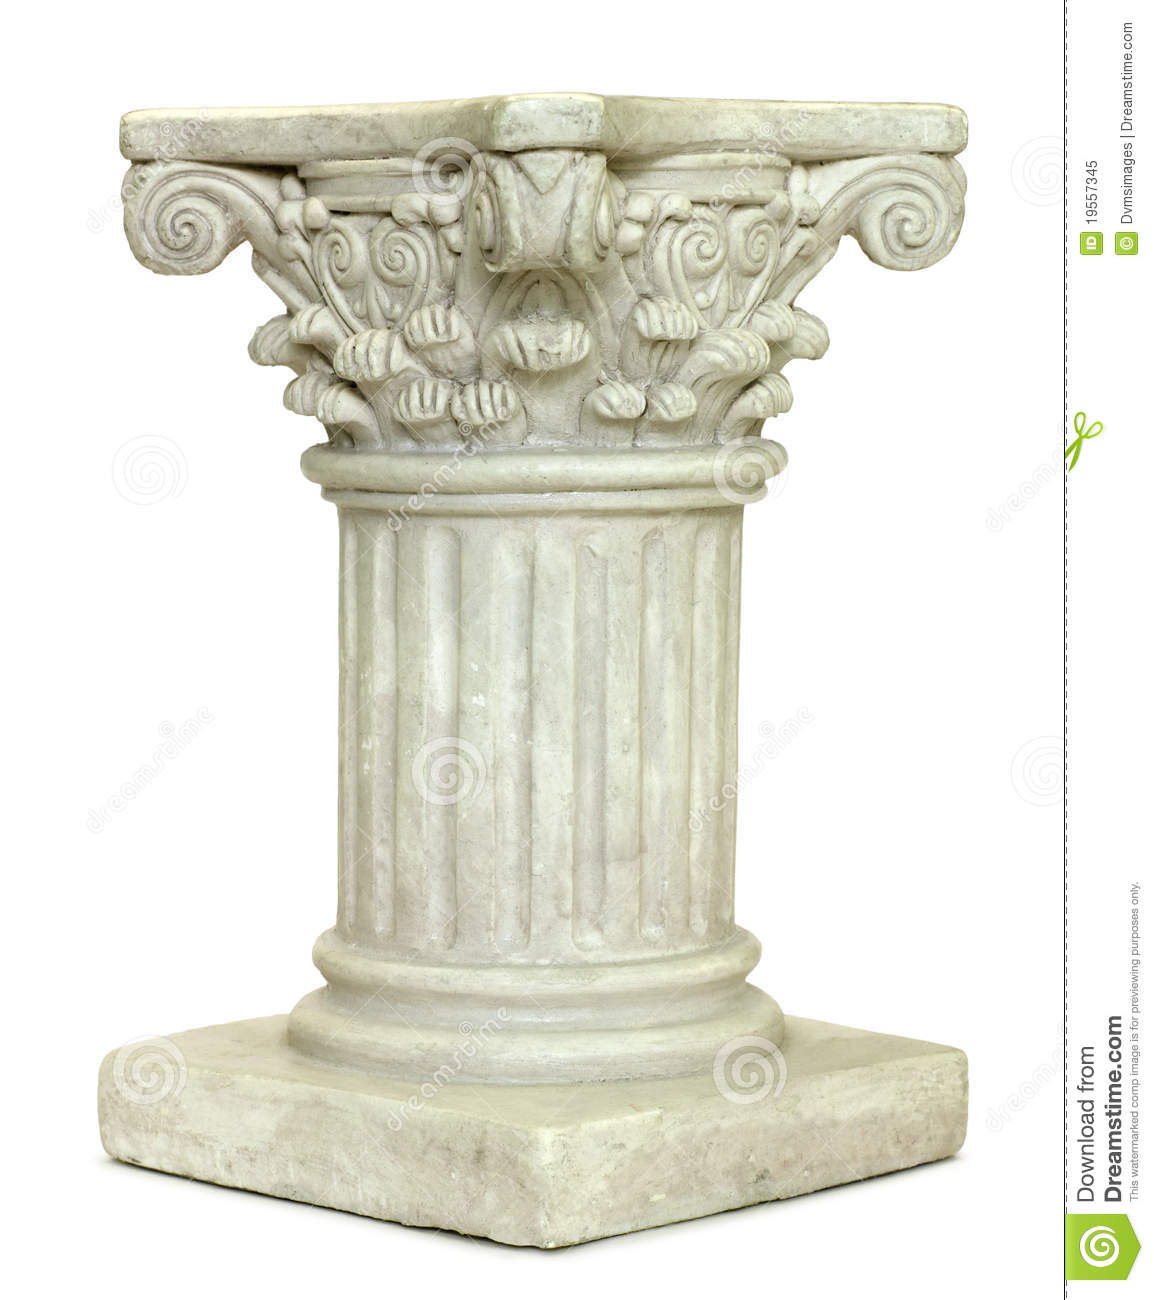 stand roman plant decorative architectural column gc decoration moldings square pedestal